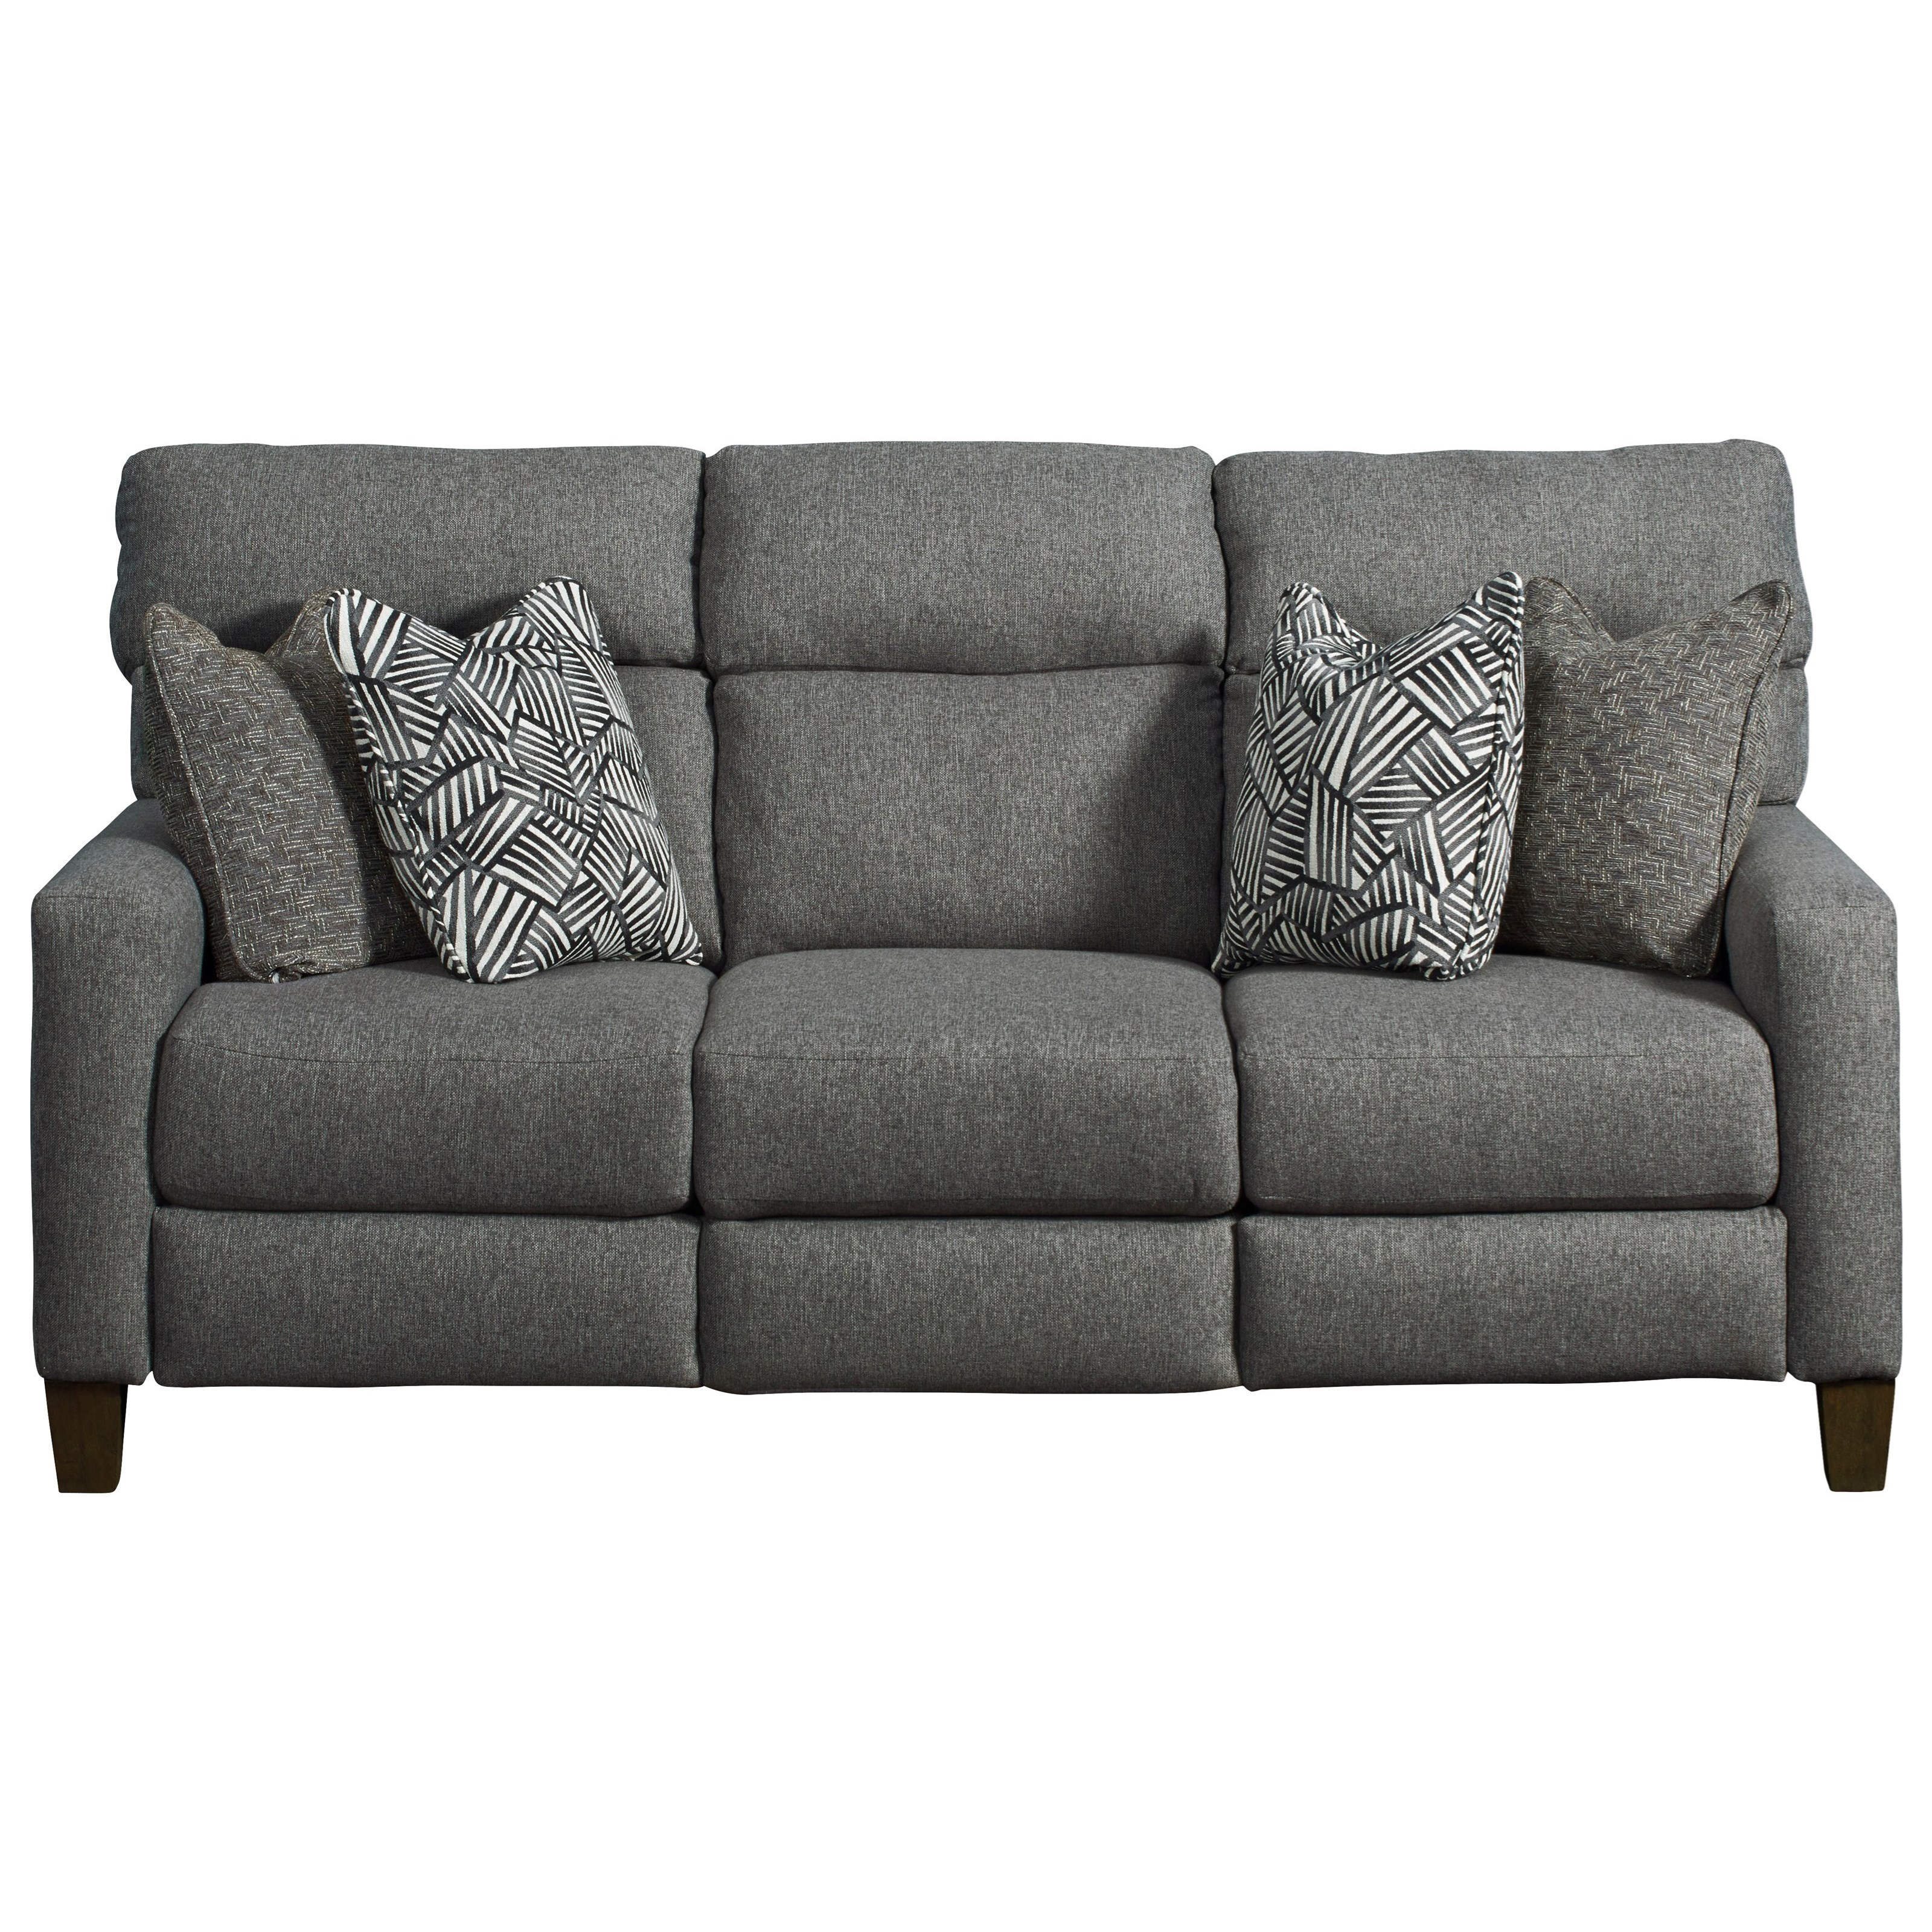 Mt. Vernon Power Headrest Sofa with Pillows by Southern Motion at Darvin Furniture